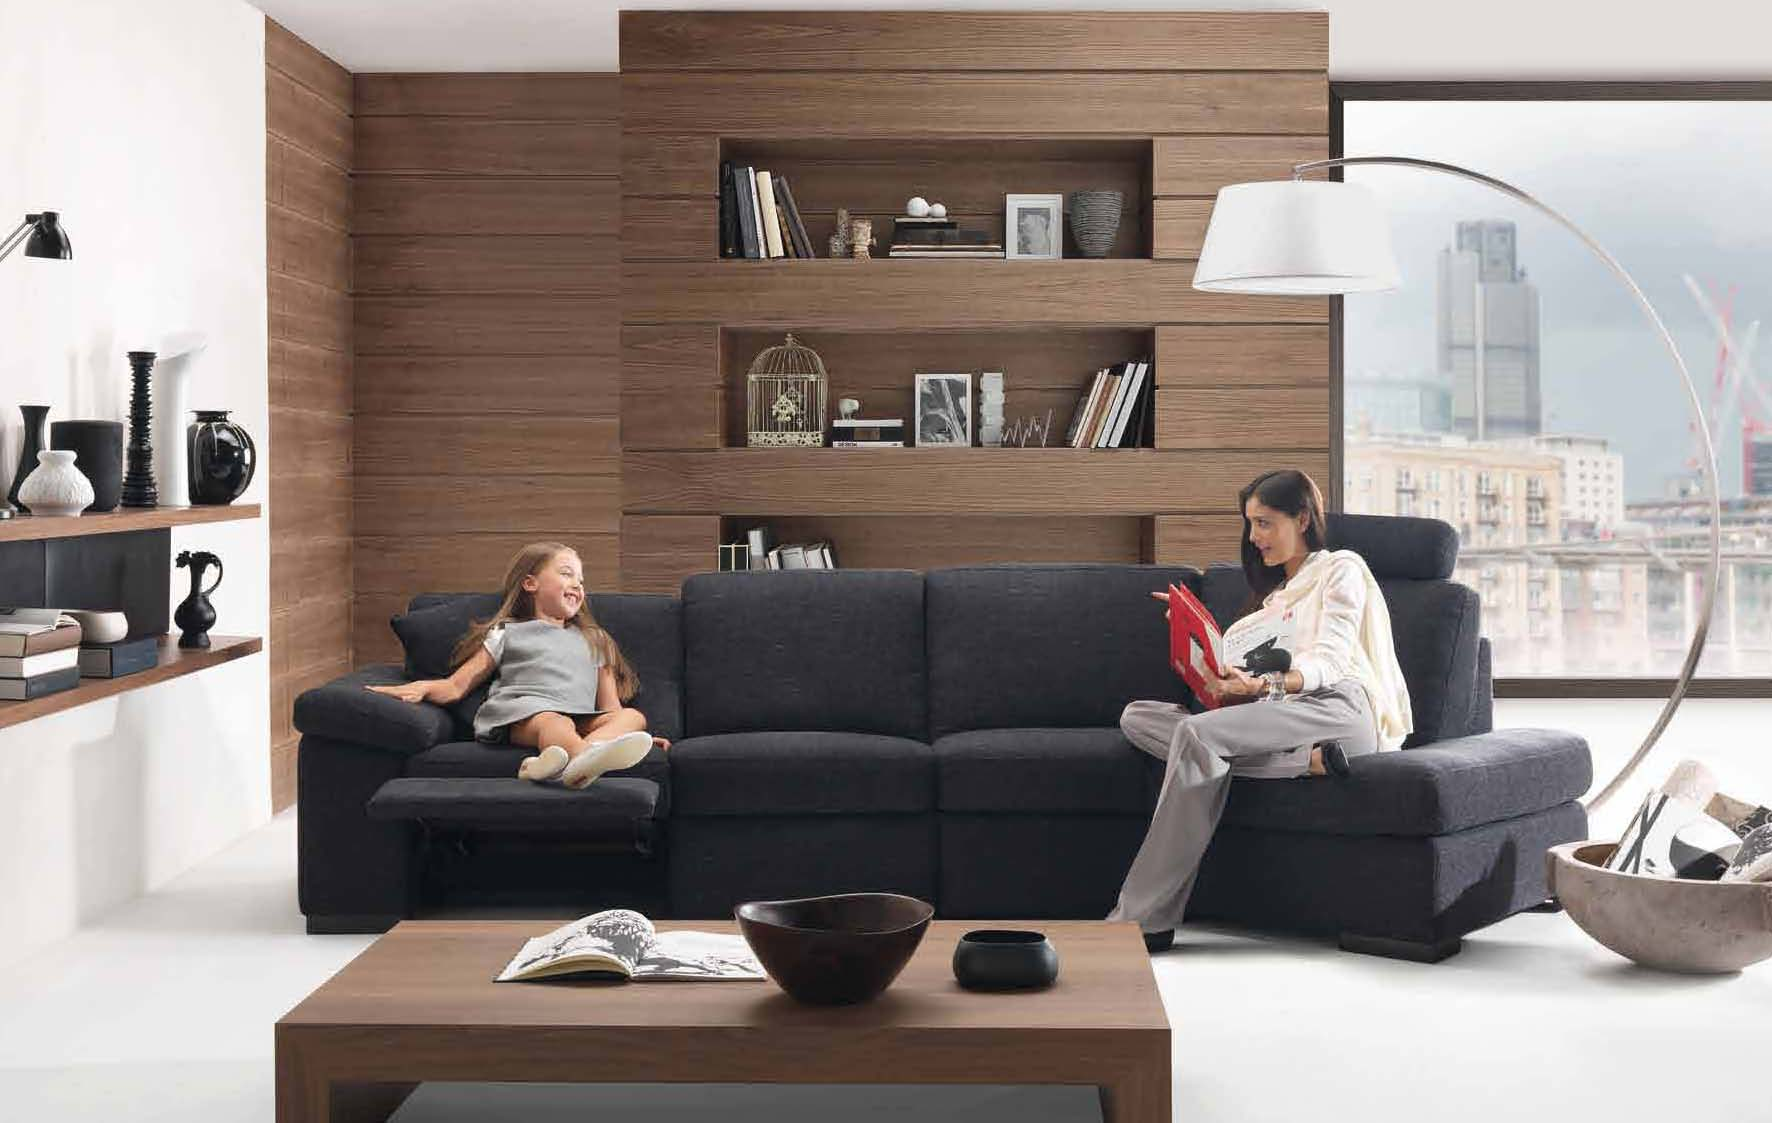 Living room styles 2010 by natuzzi - Contemporary living room style ...